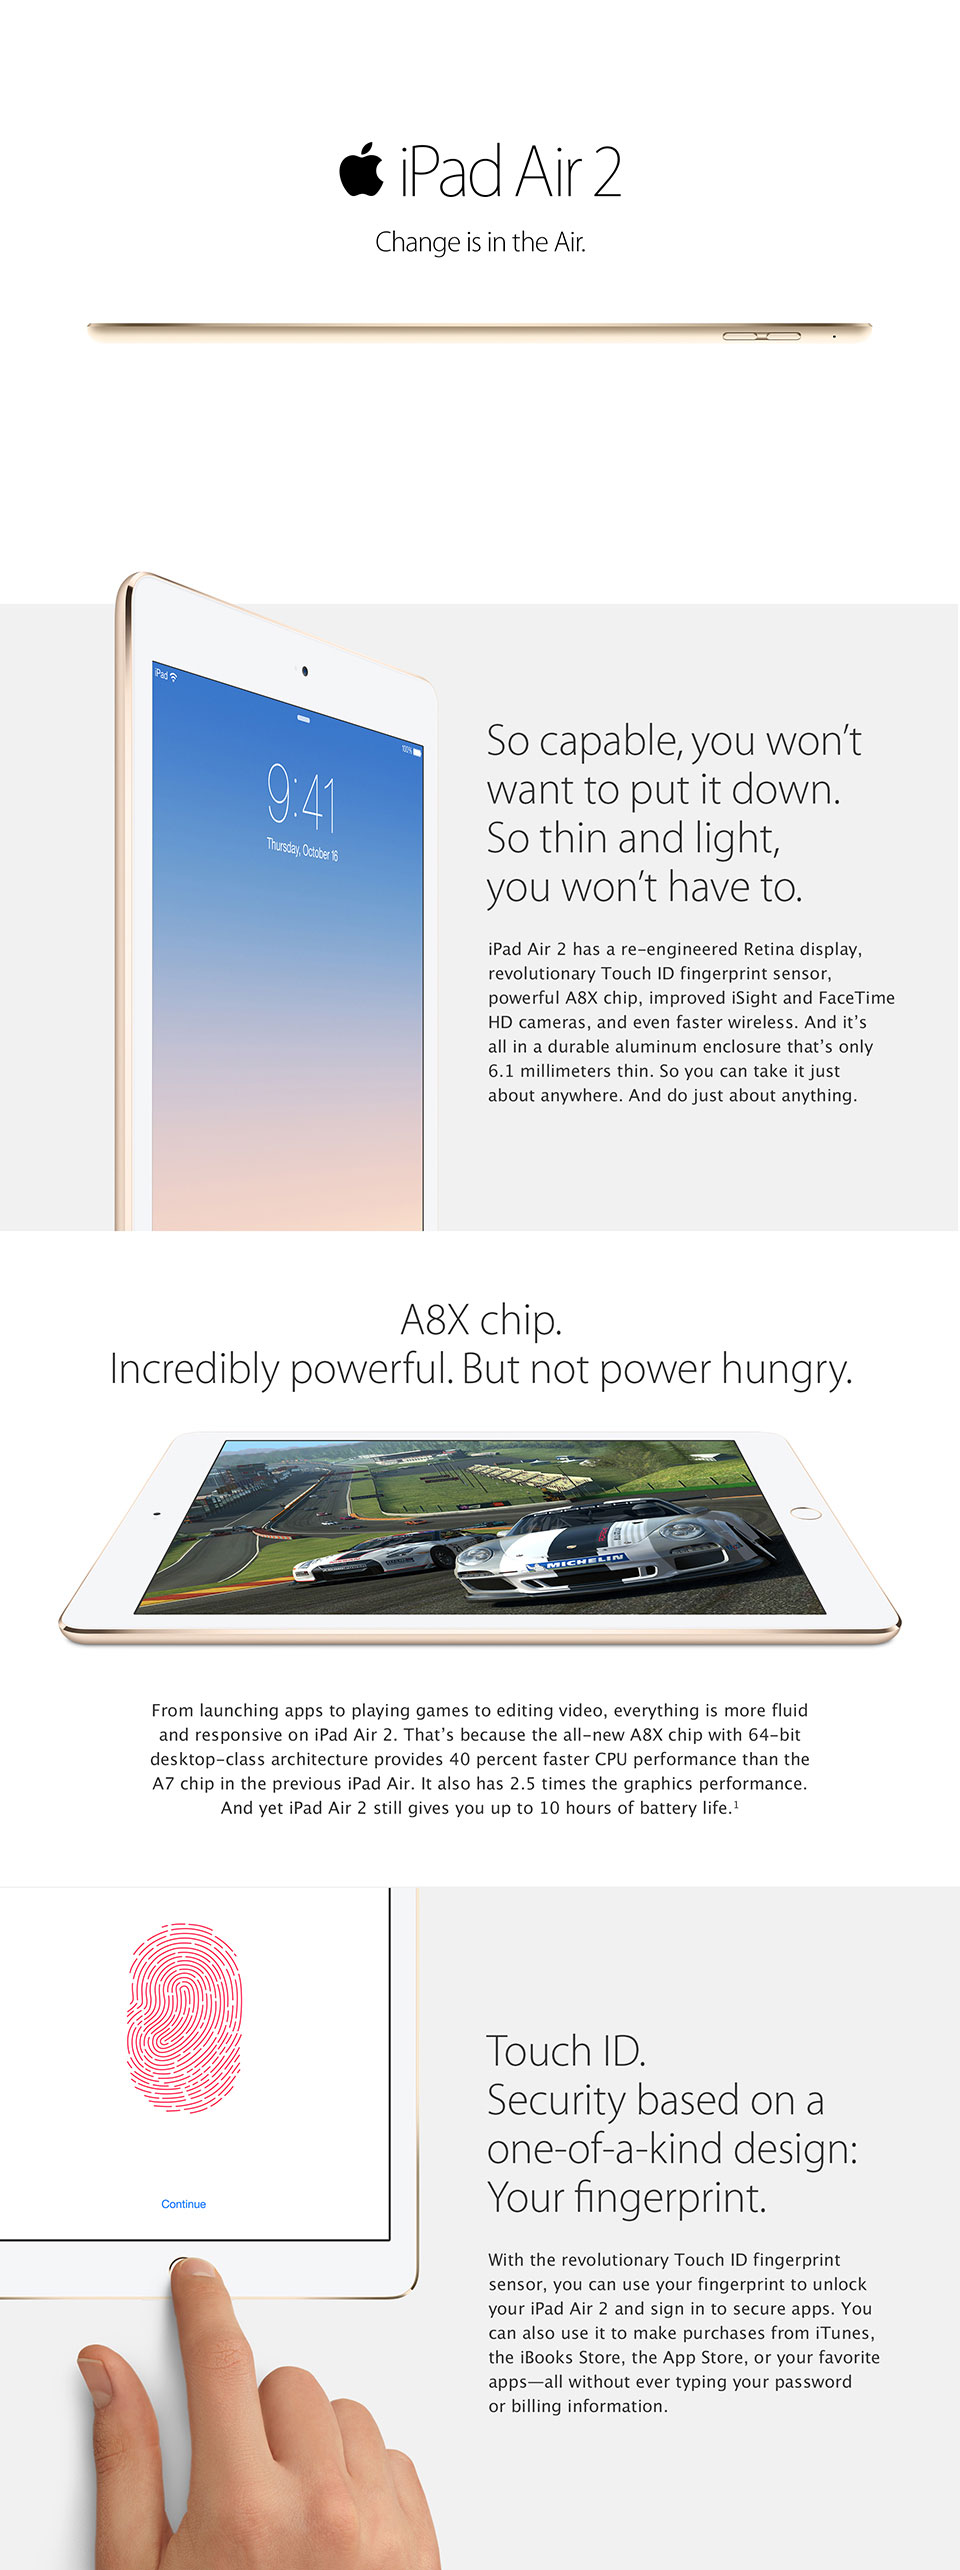 Ipad Air 2 so capable you won't want to put it down. A8X chip. Touch ID.